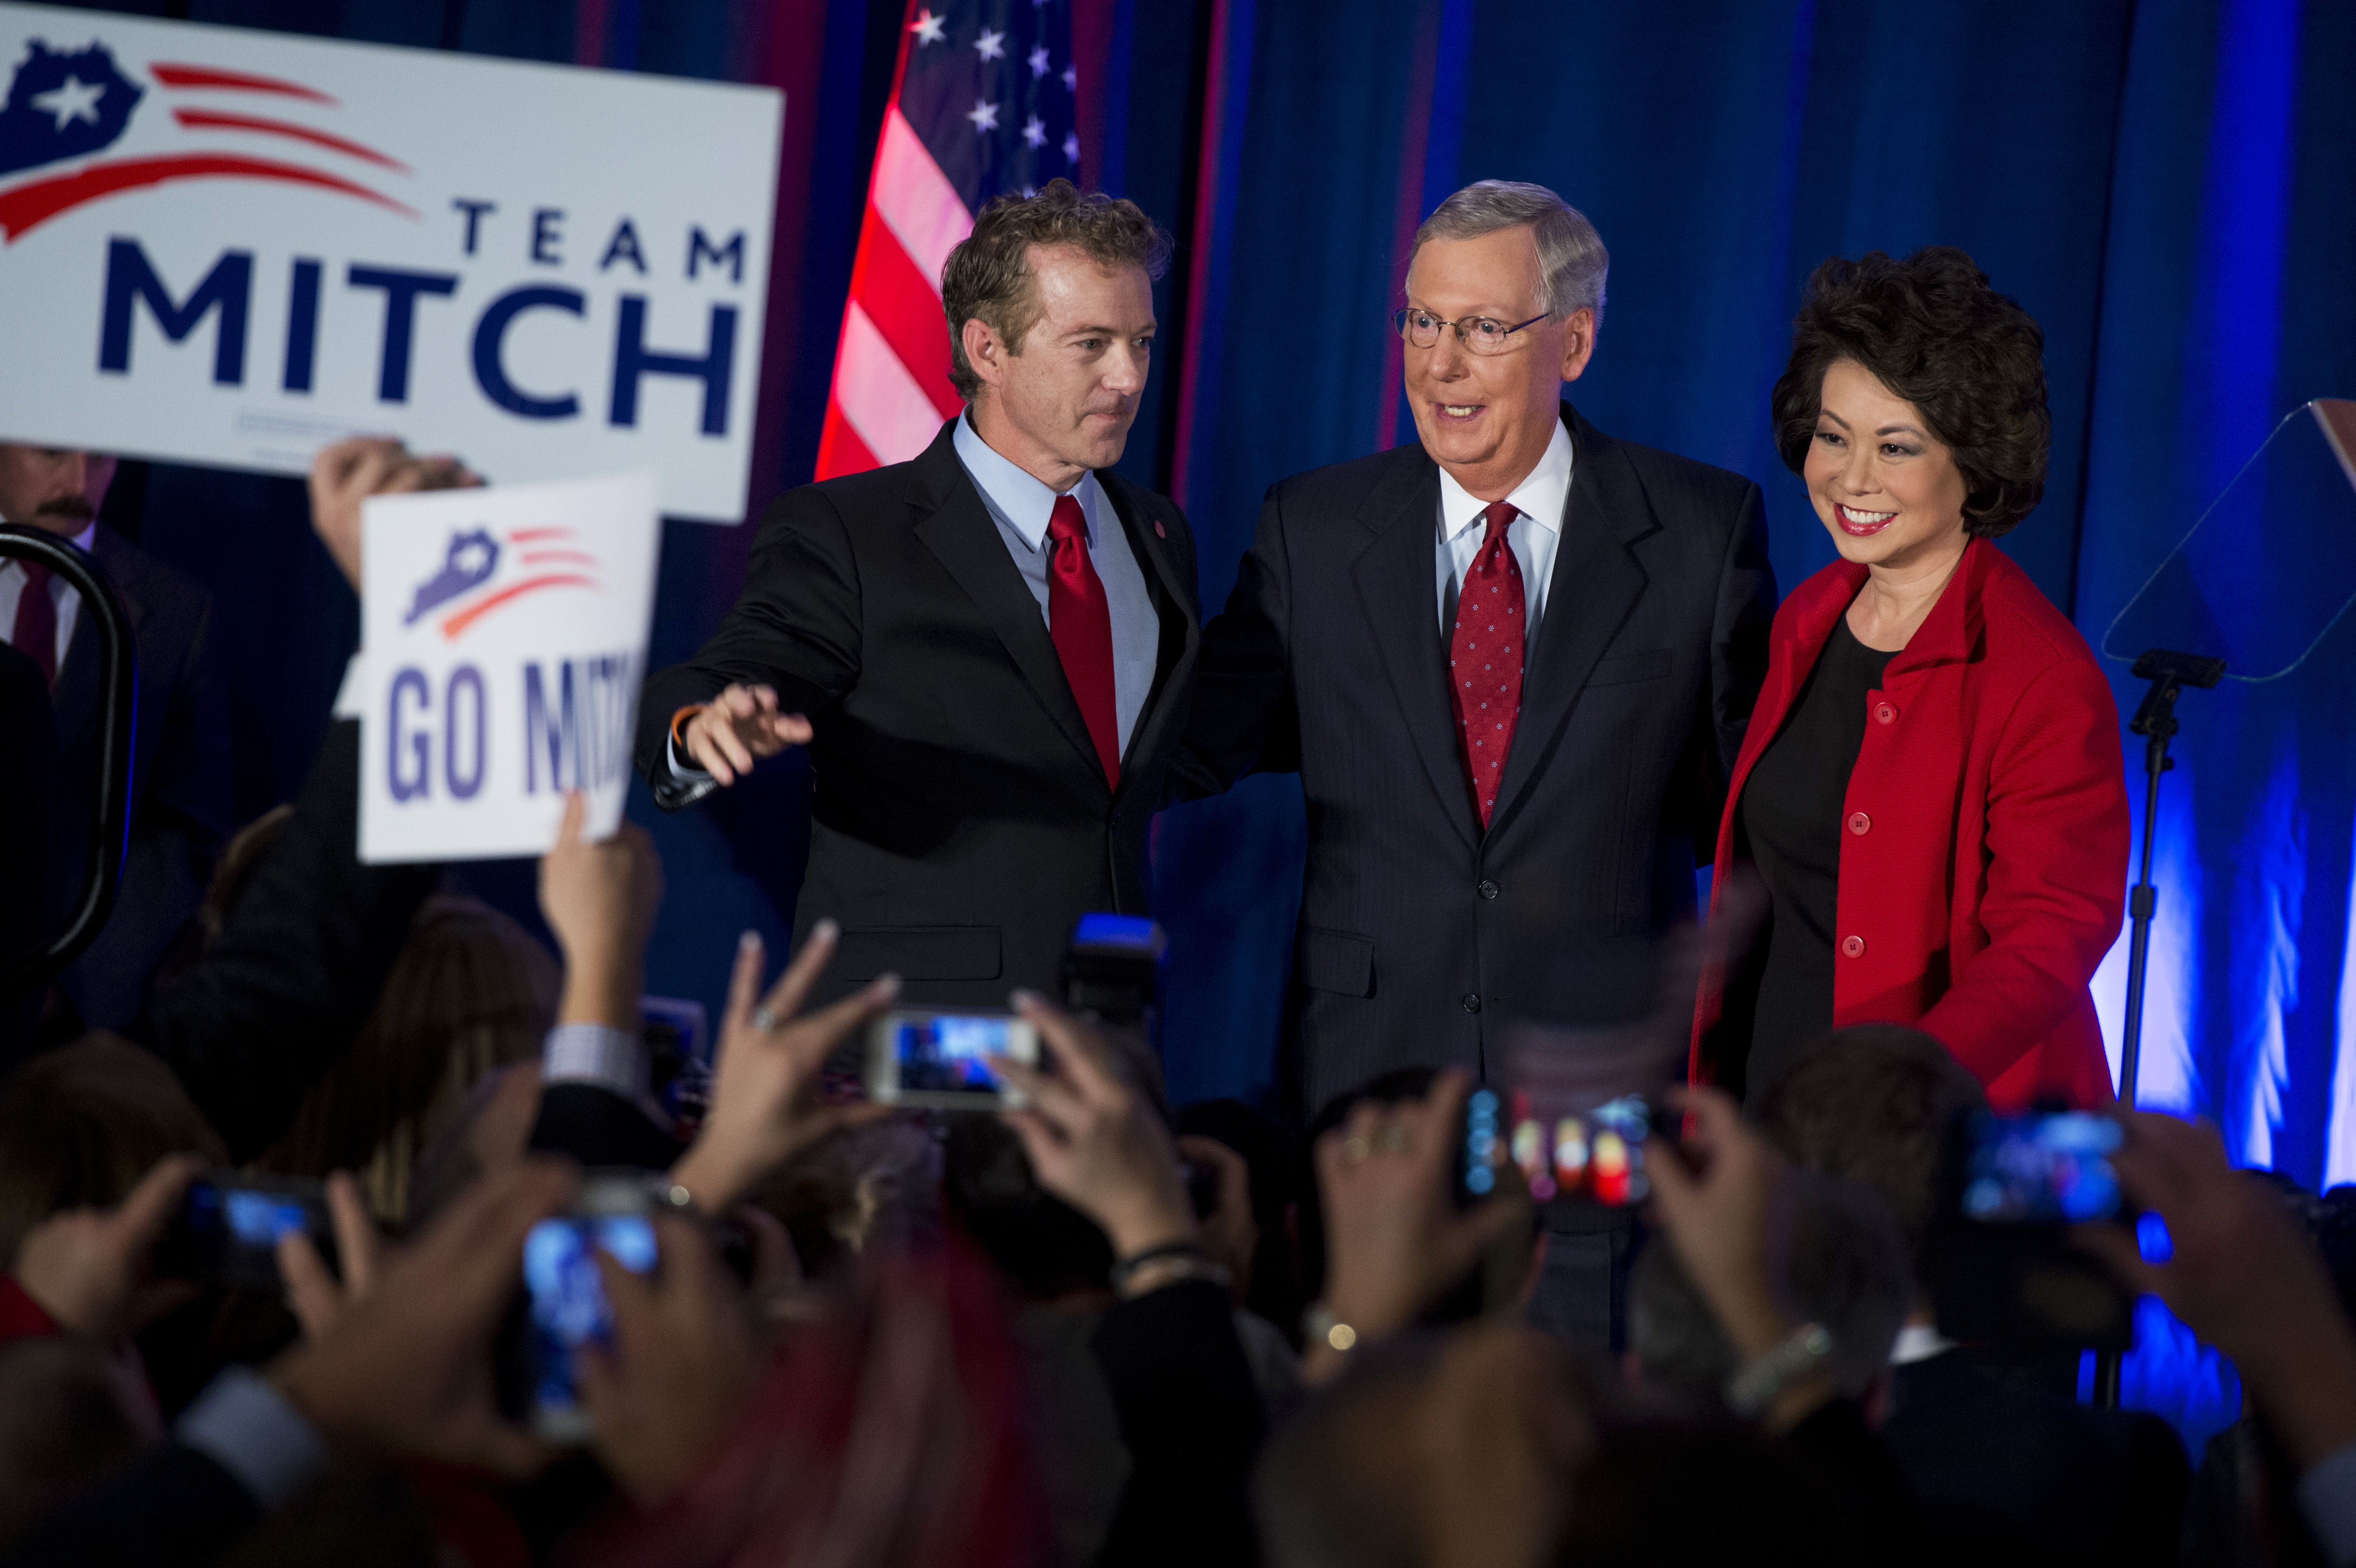 Sen. Rand Paul (R-KY) and Senate Majority Leader Mitch McConnell (R-KY) will be key players in tech policy debates in 2015.